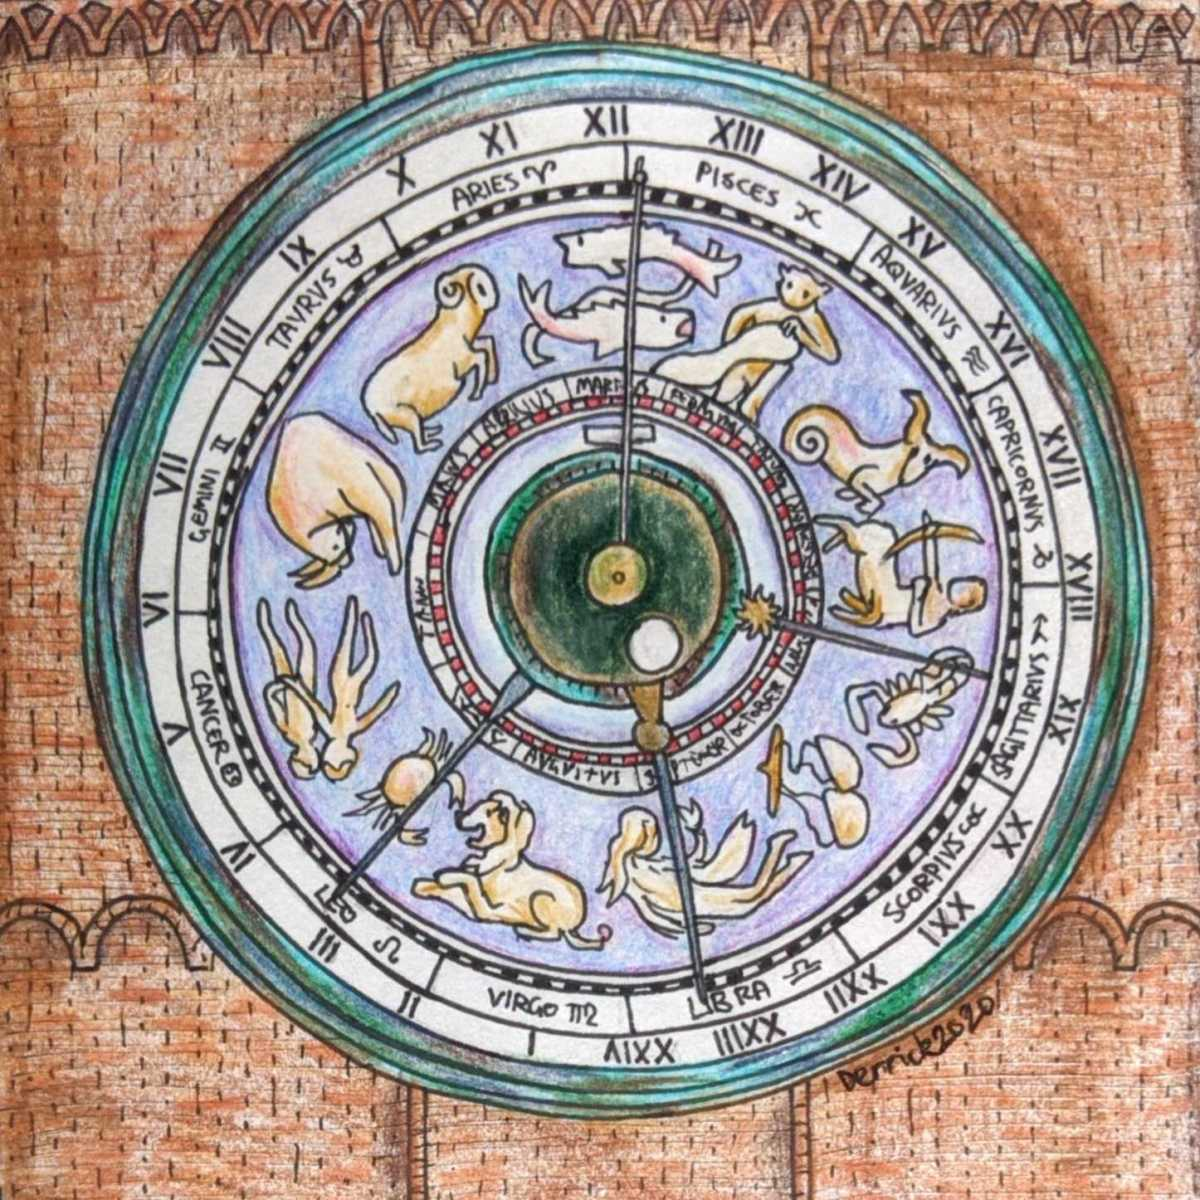 Pencil drawing of the torrazzo of cremona astronomical clock italy